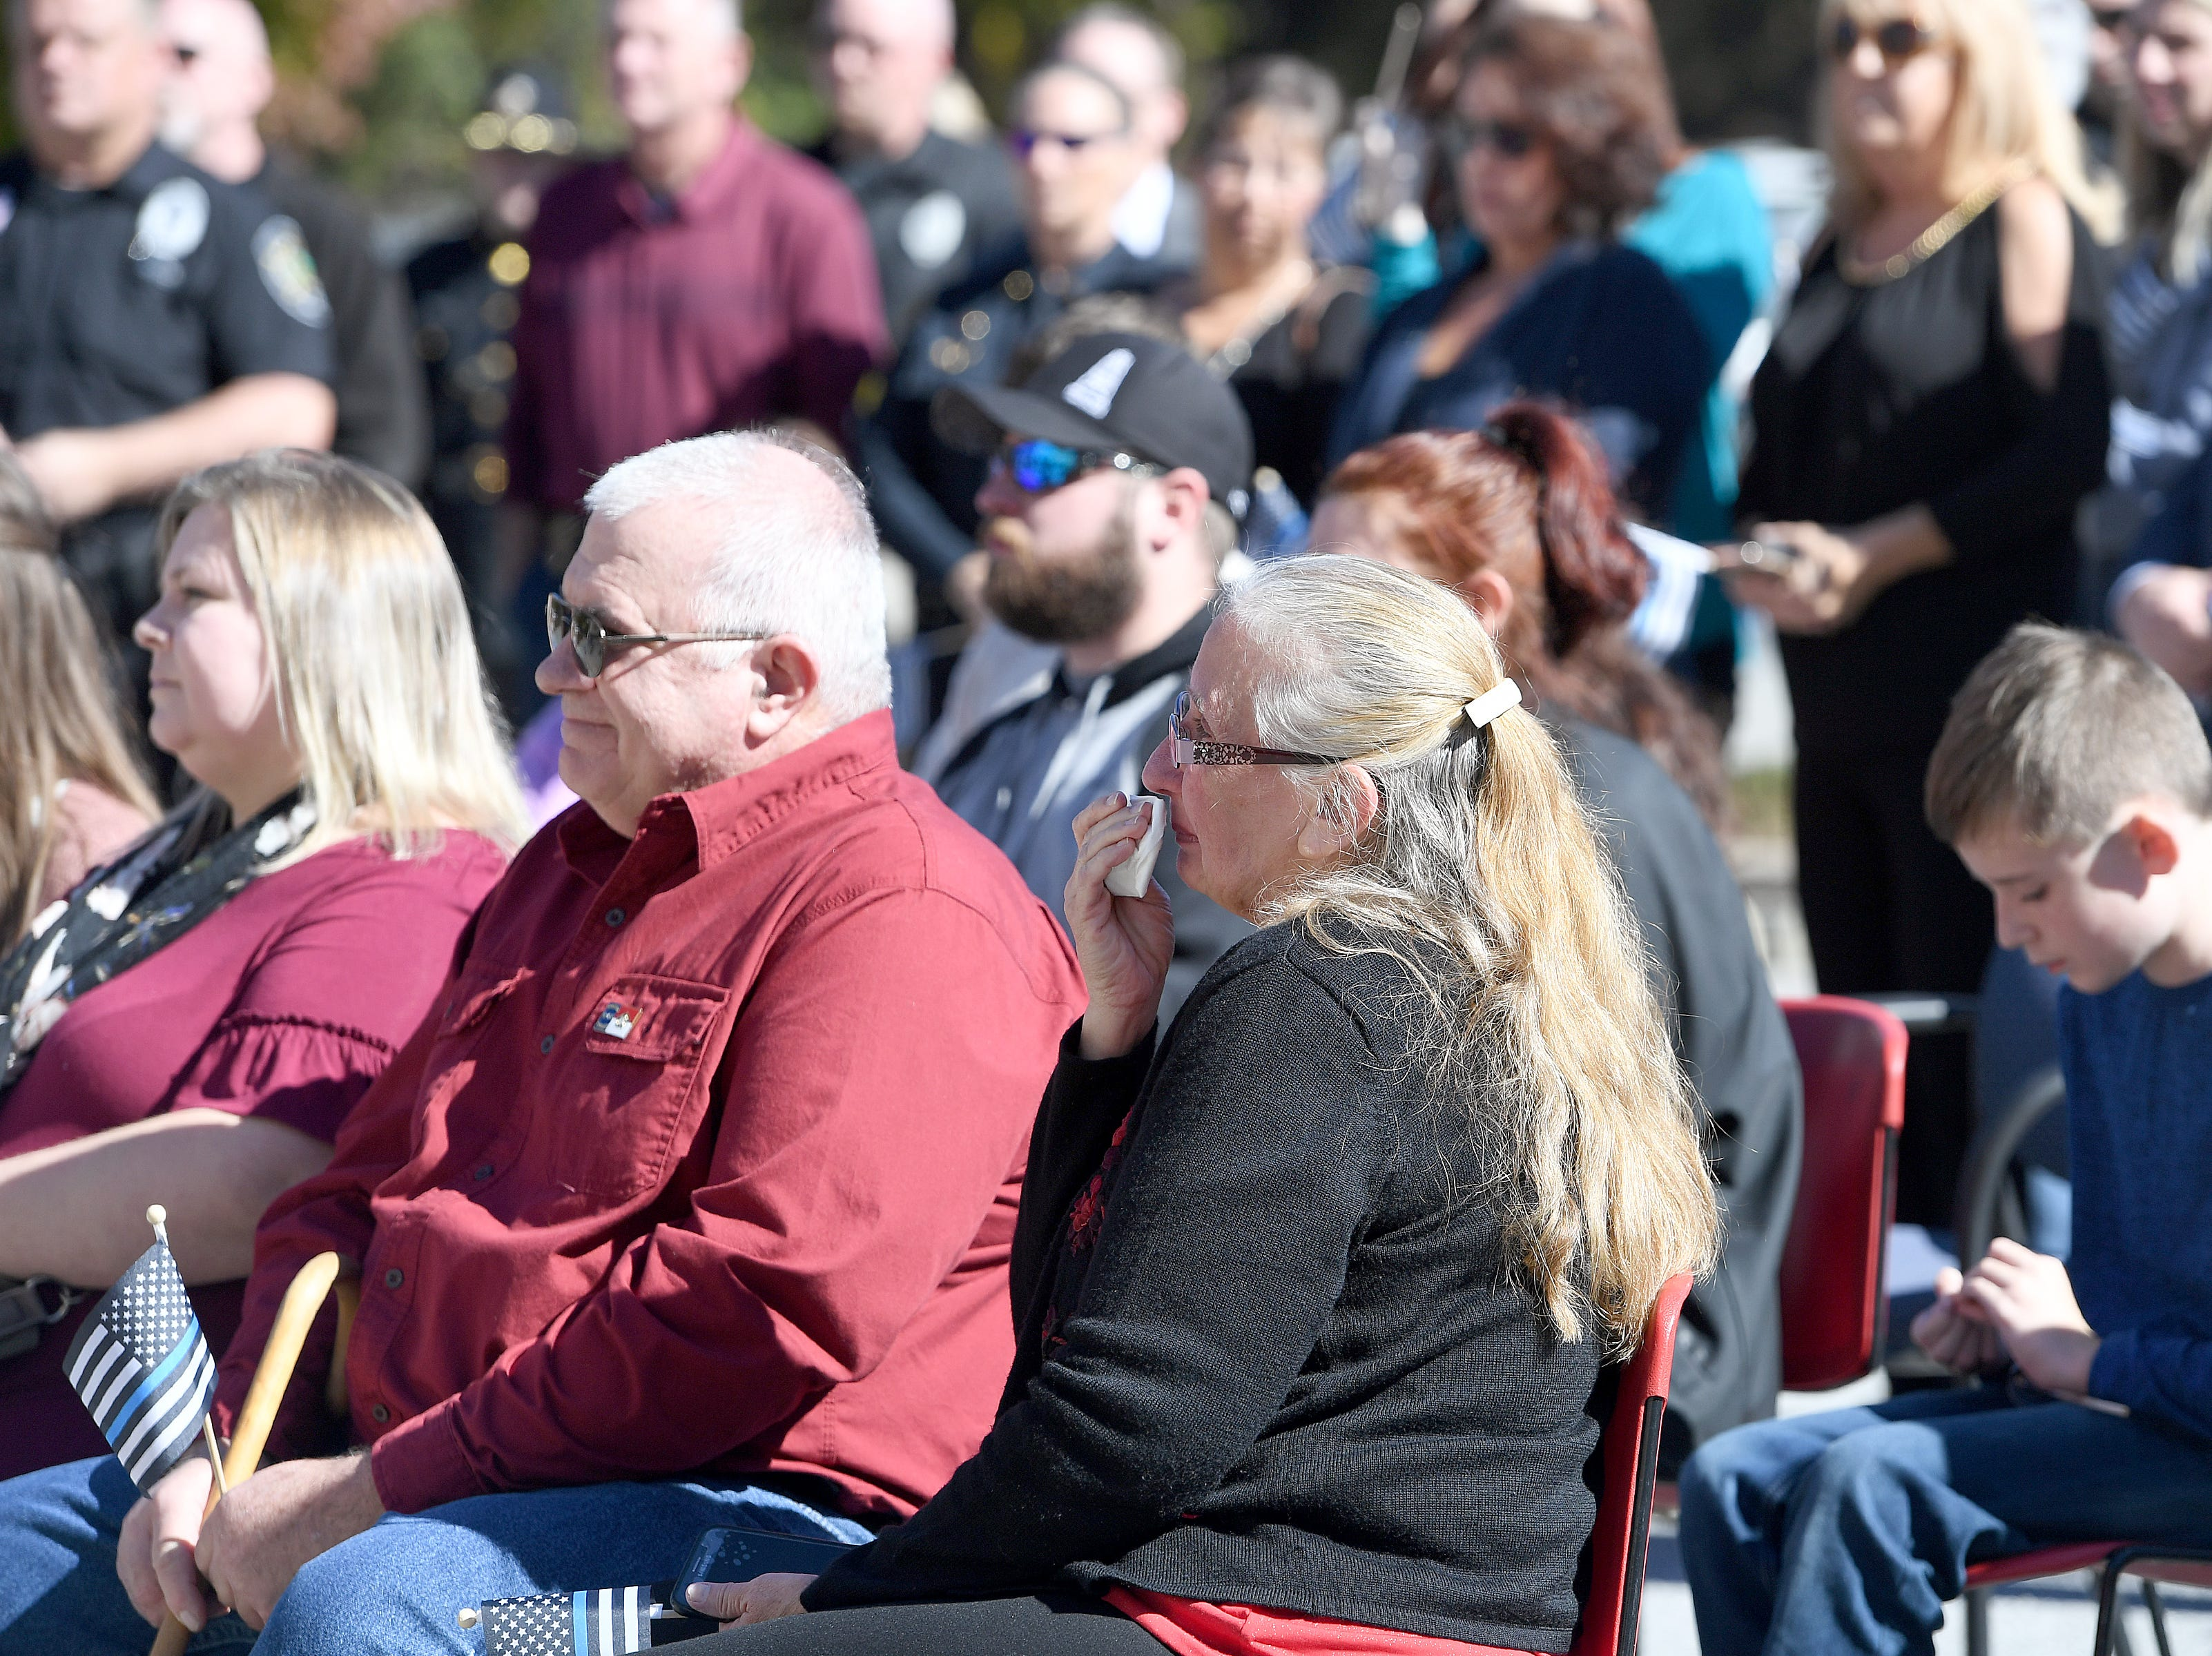 Robert Bingaman's mother, Donna, right, wipes her face during a ceremony to dedicate a portion of Old Haywood Road to the Asheville police officer at the Traffic Safety Office on the five-year-anniversary of his death on Oct. 29, 2018.